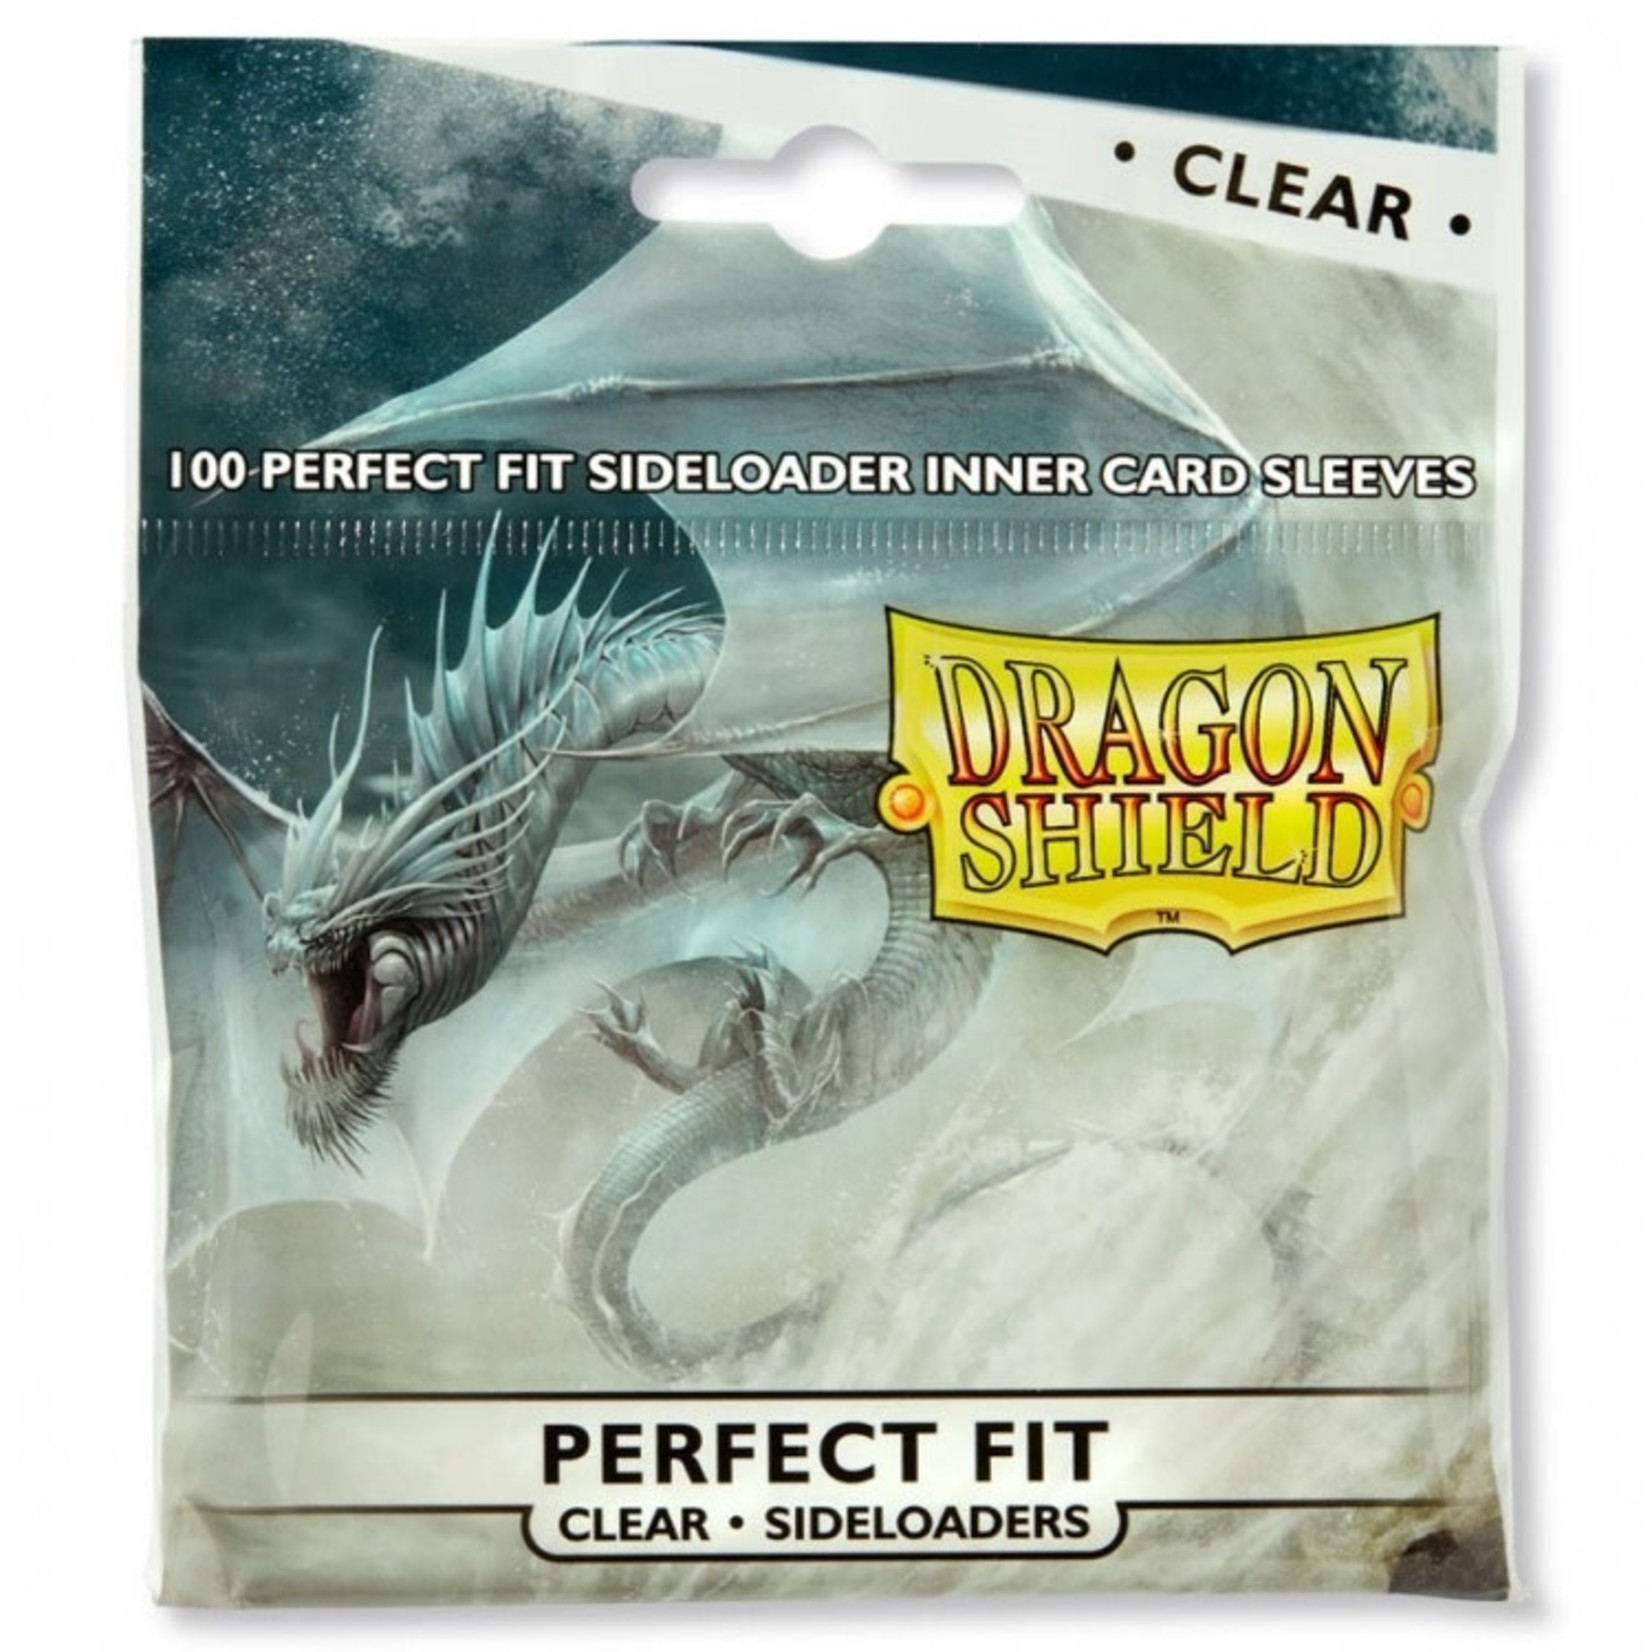 Dragon Shield DS Perfect Fit Sideloader Card Sleeves Clear (100)